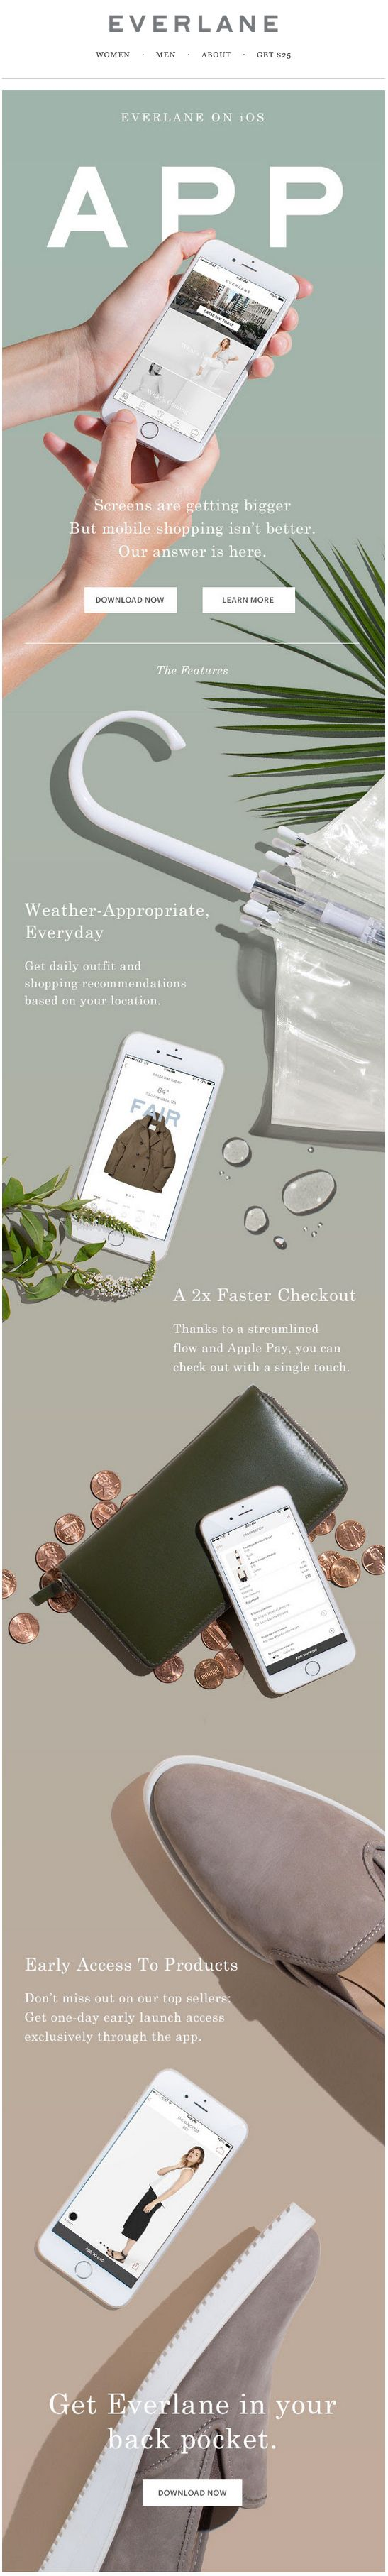 Everlane Introducing the Everlane App email